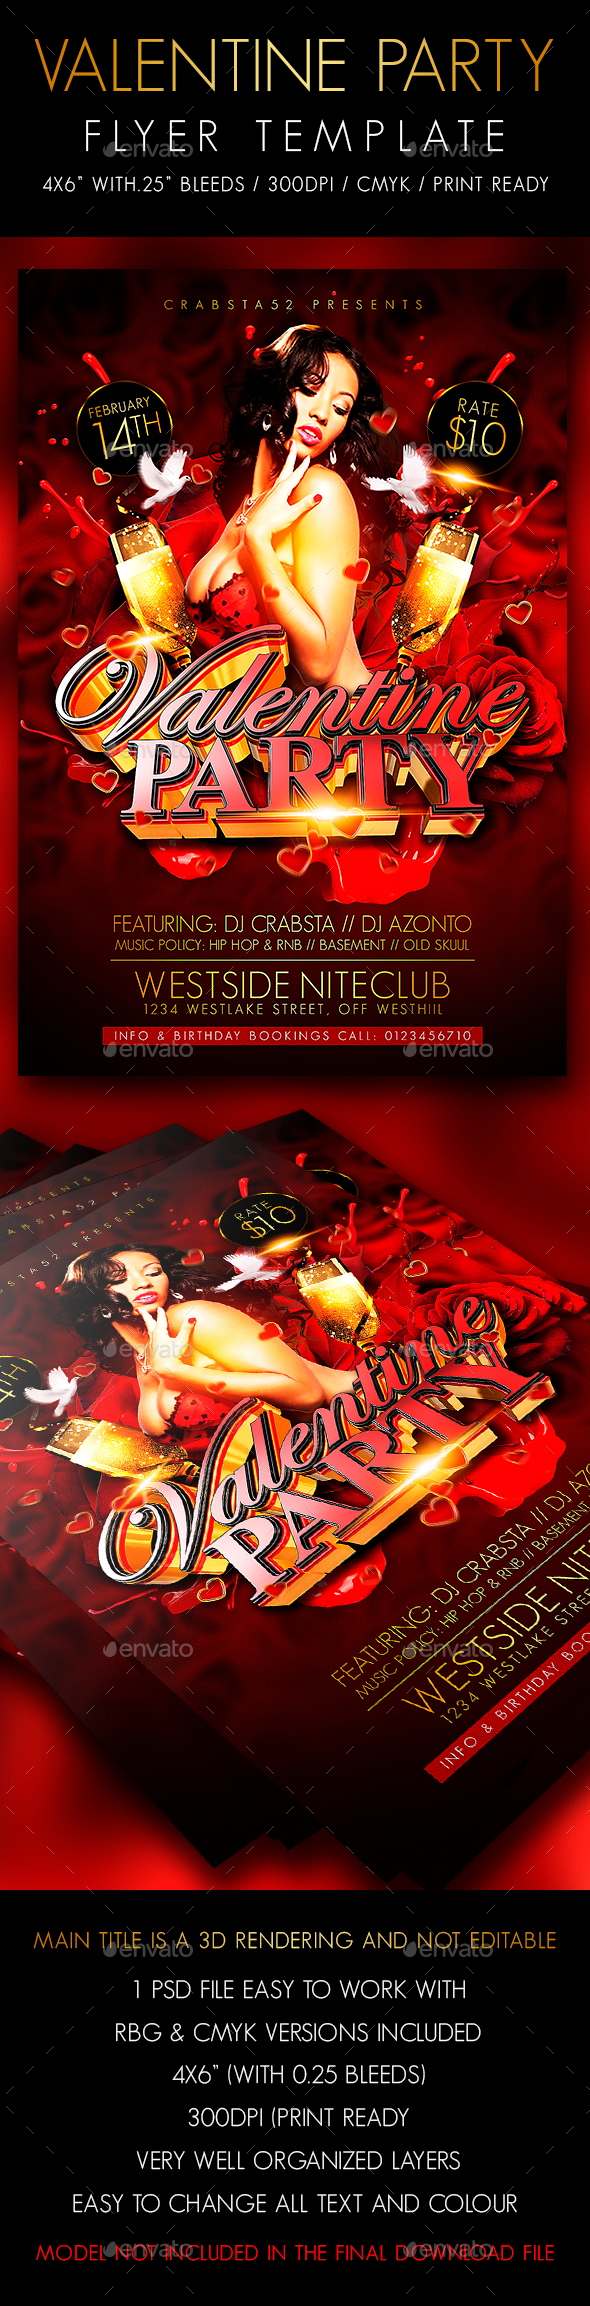 Valentine Party Flyer Template - Clubs & Parties Events